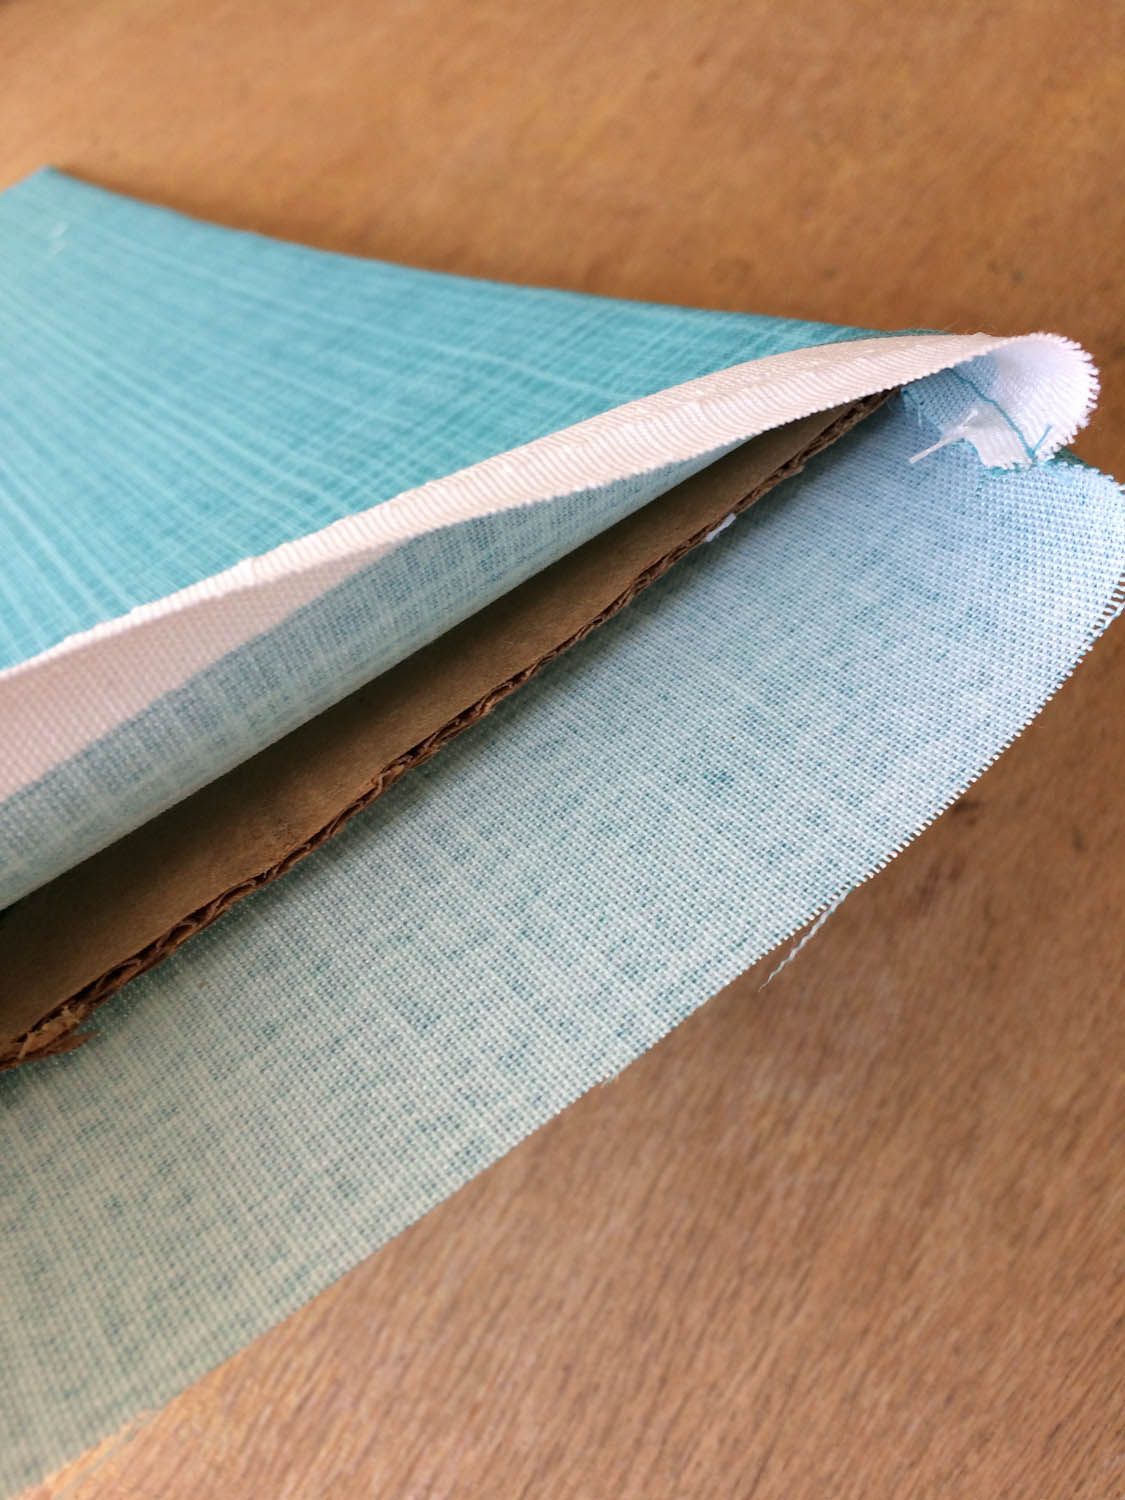 inserting cardboard base into fabric cover